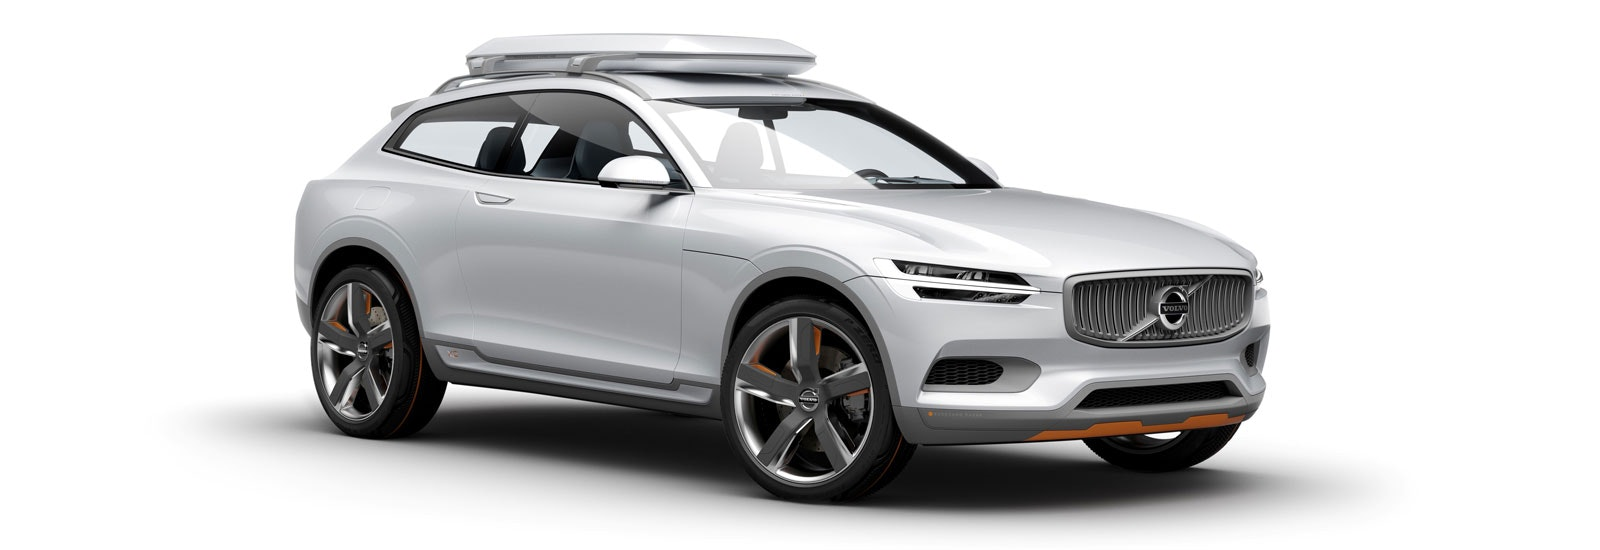 Volvo XC50 Coupe SUV price, specs and release date | carwow